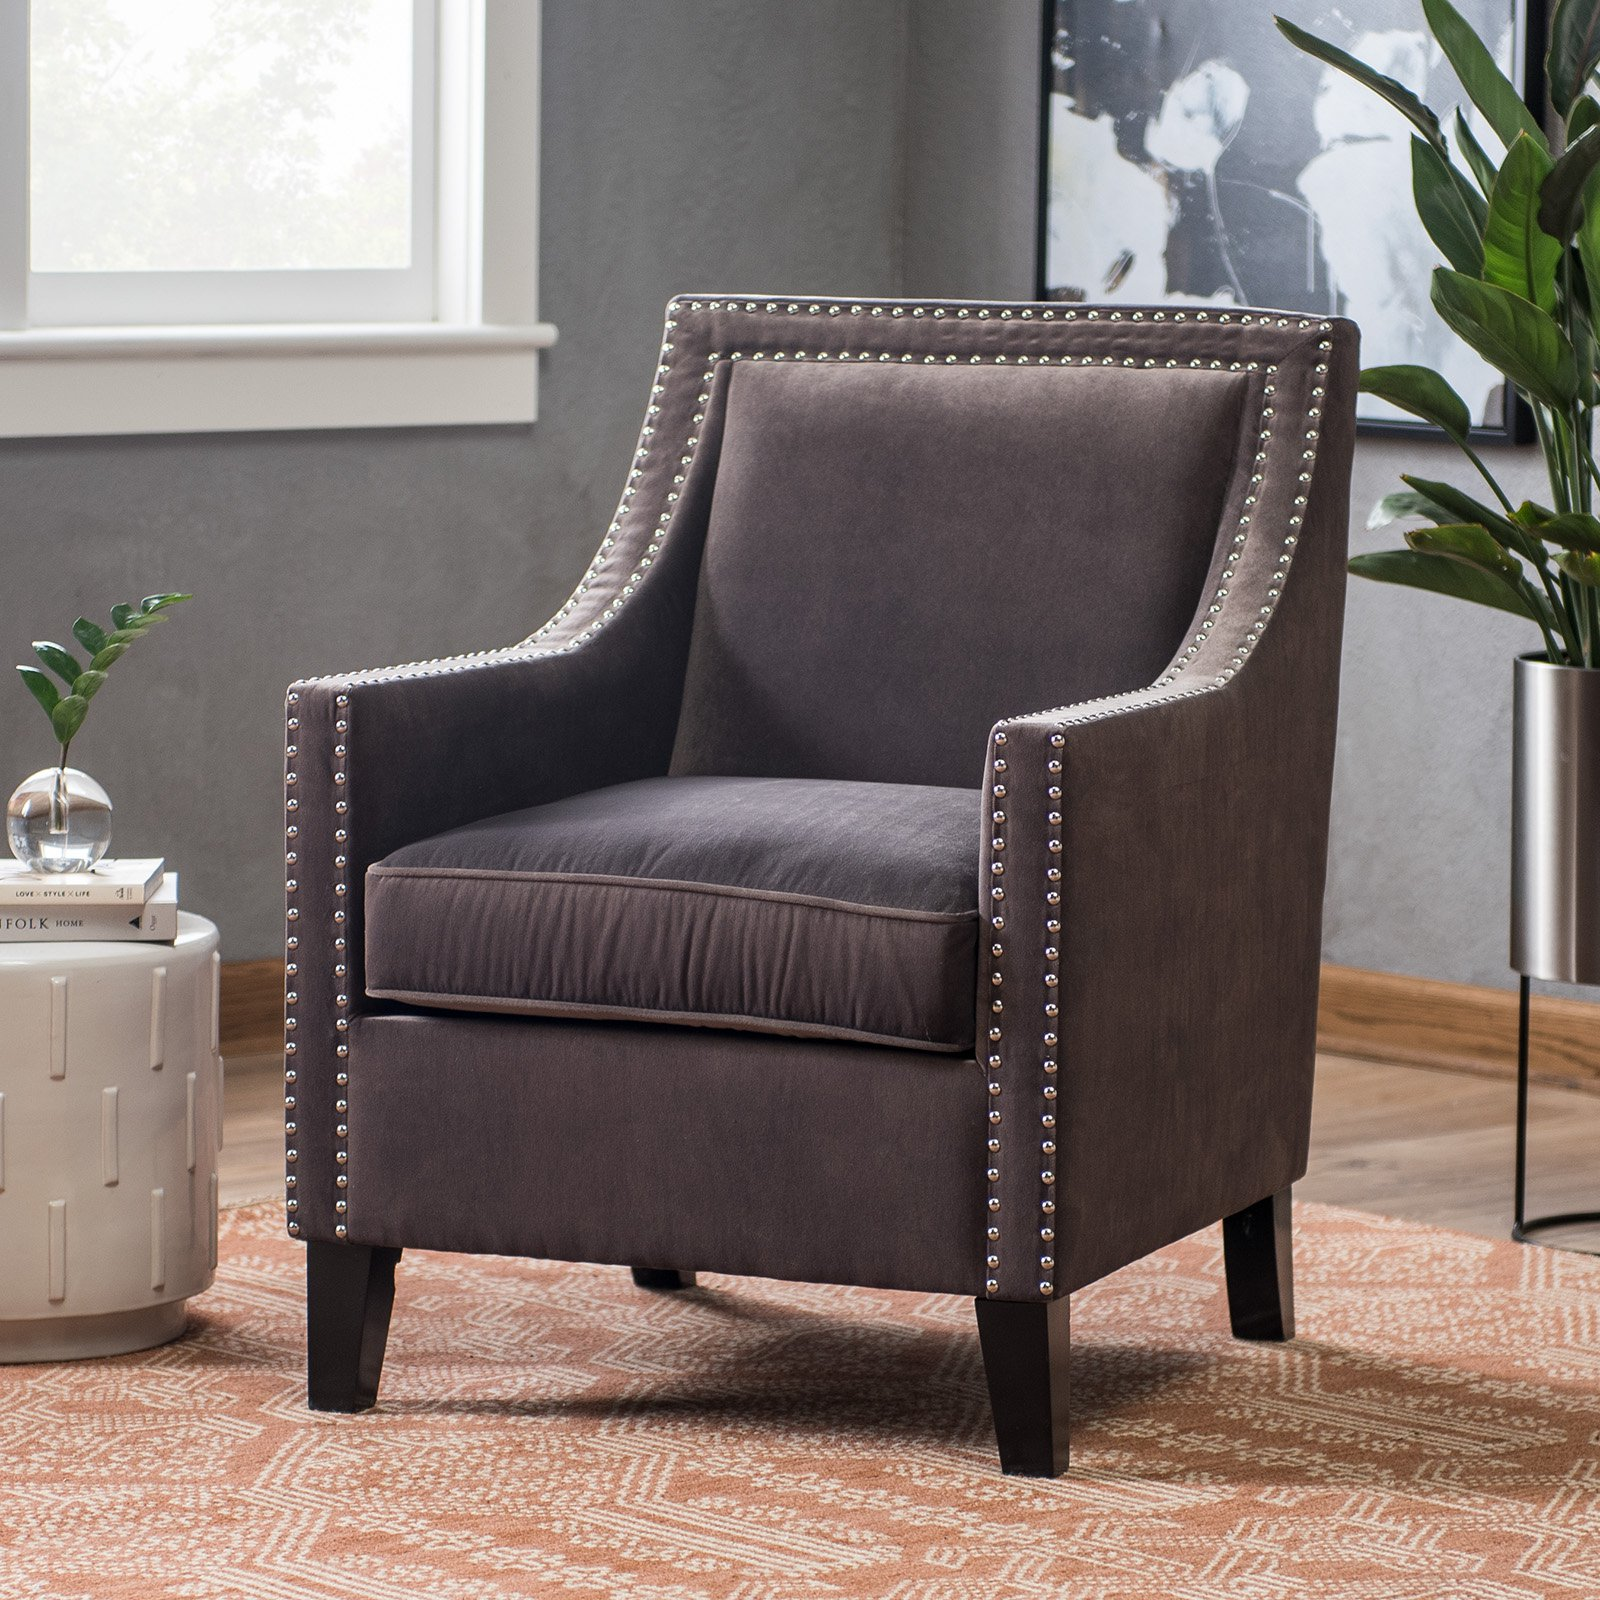 Belham Living Delaney Armchair Taupe by